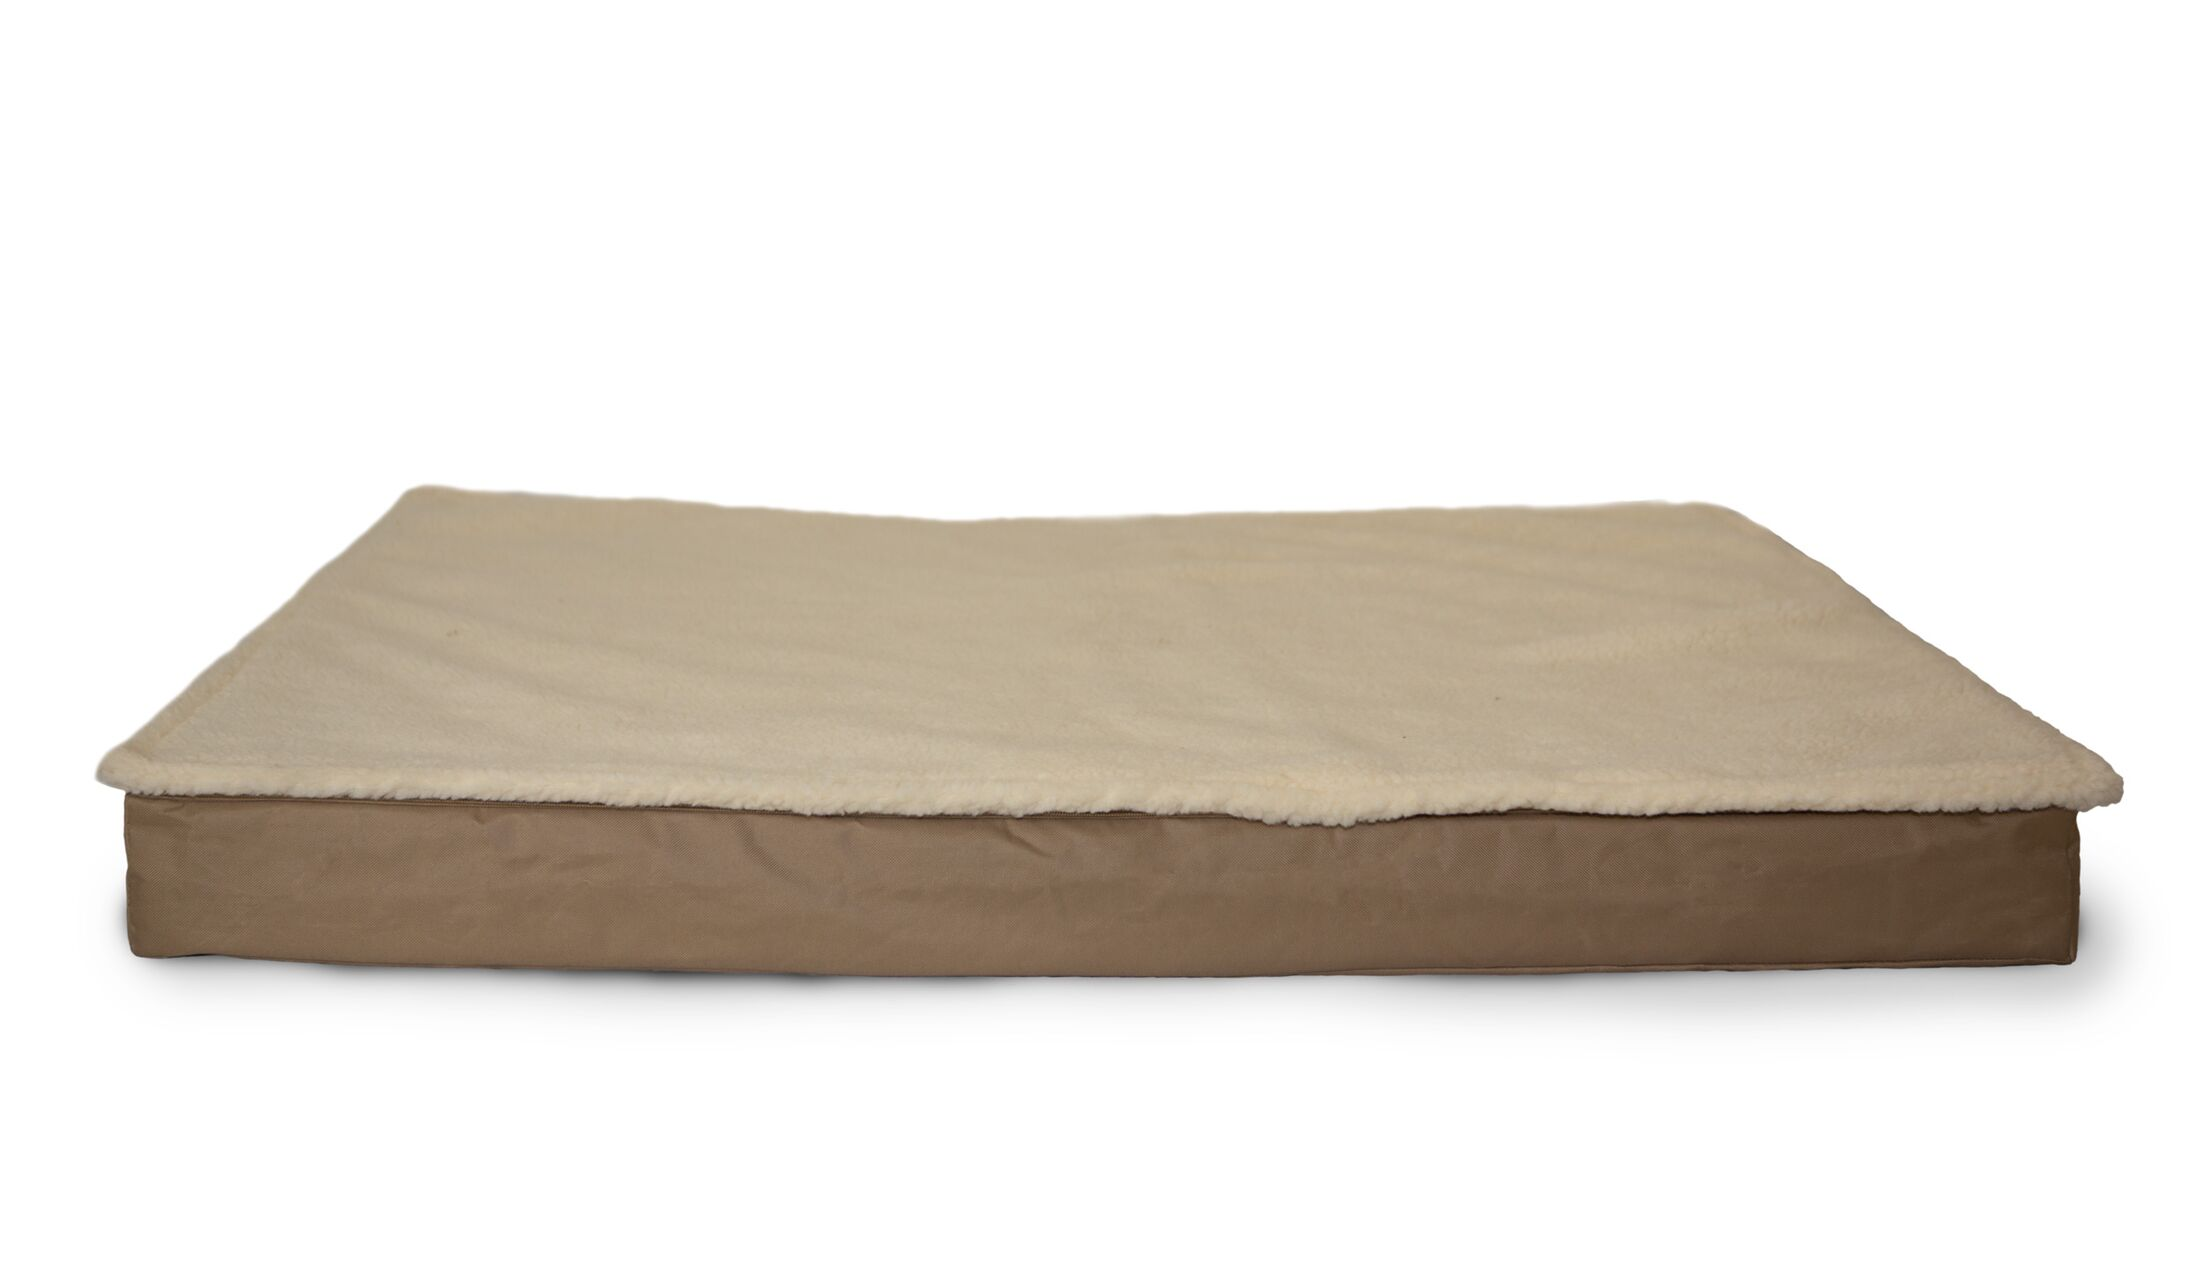 Etta Deluxe Outdoor Memory Foam Dog Bed with Removable Cover Color: Sand, Size: Large (36